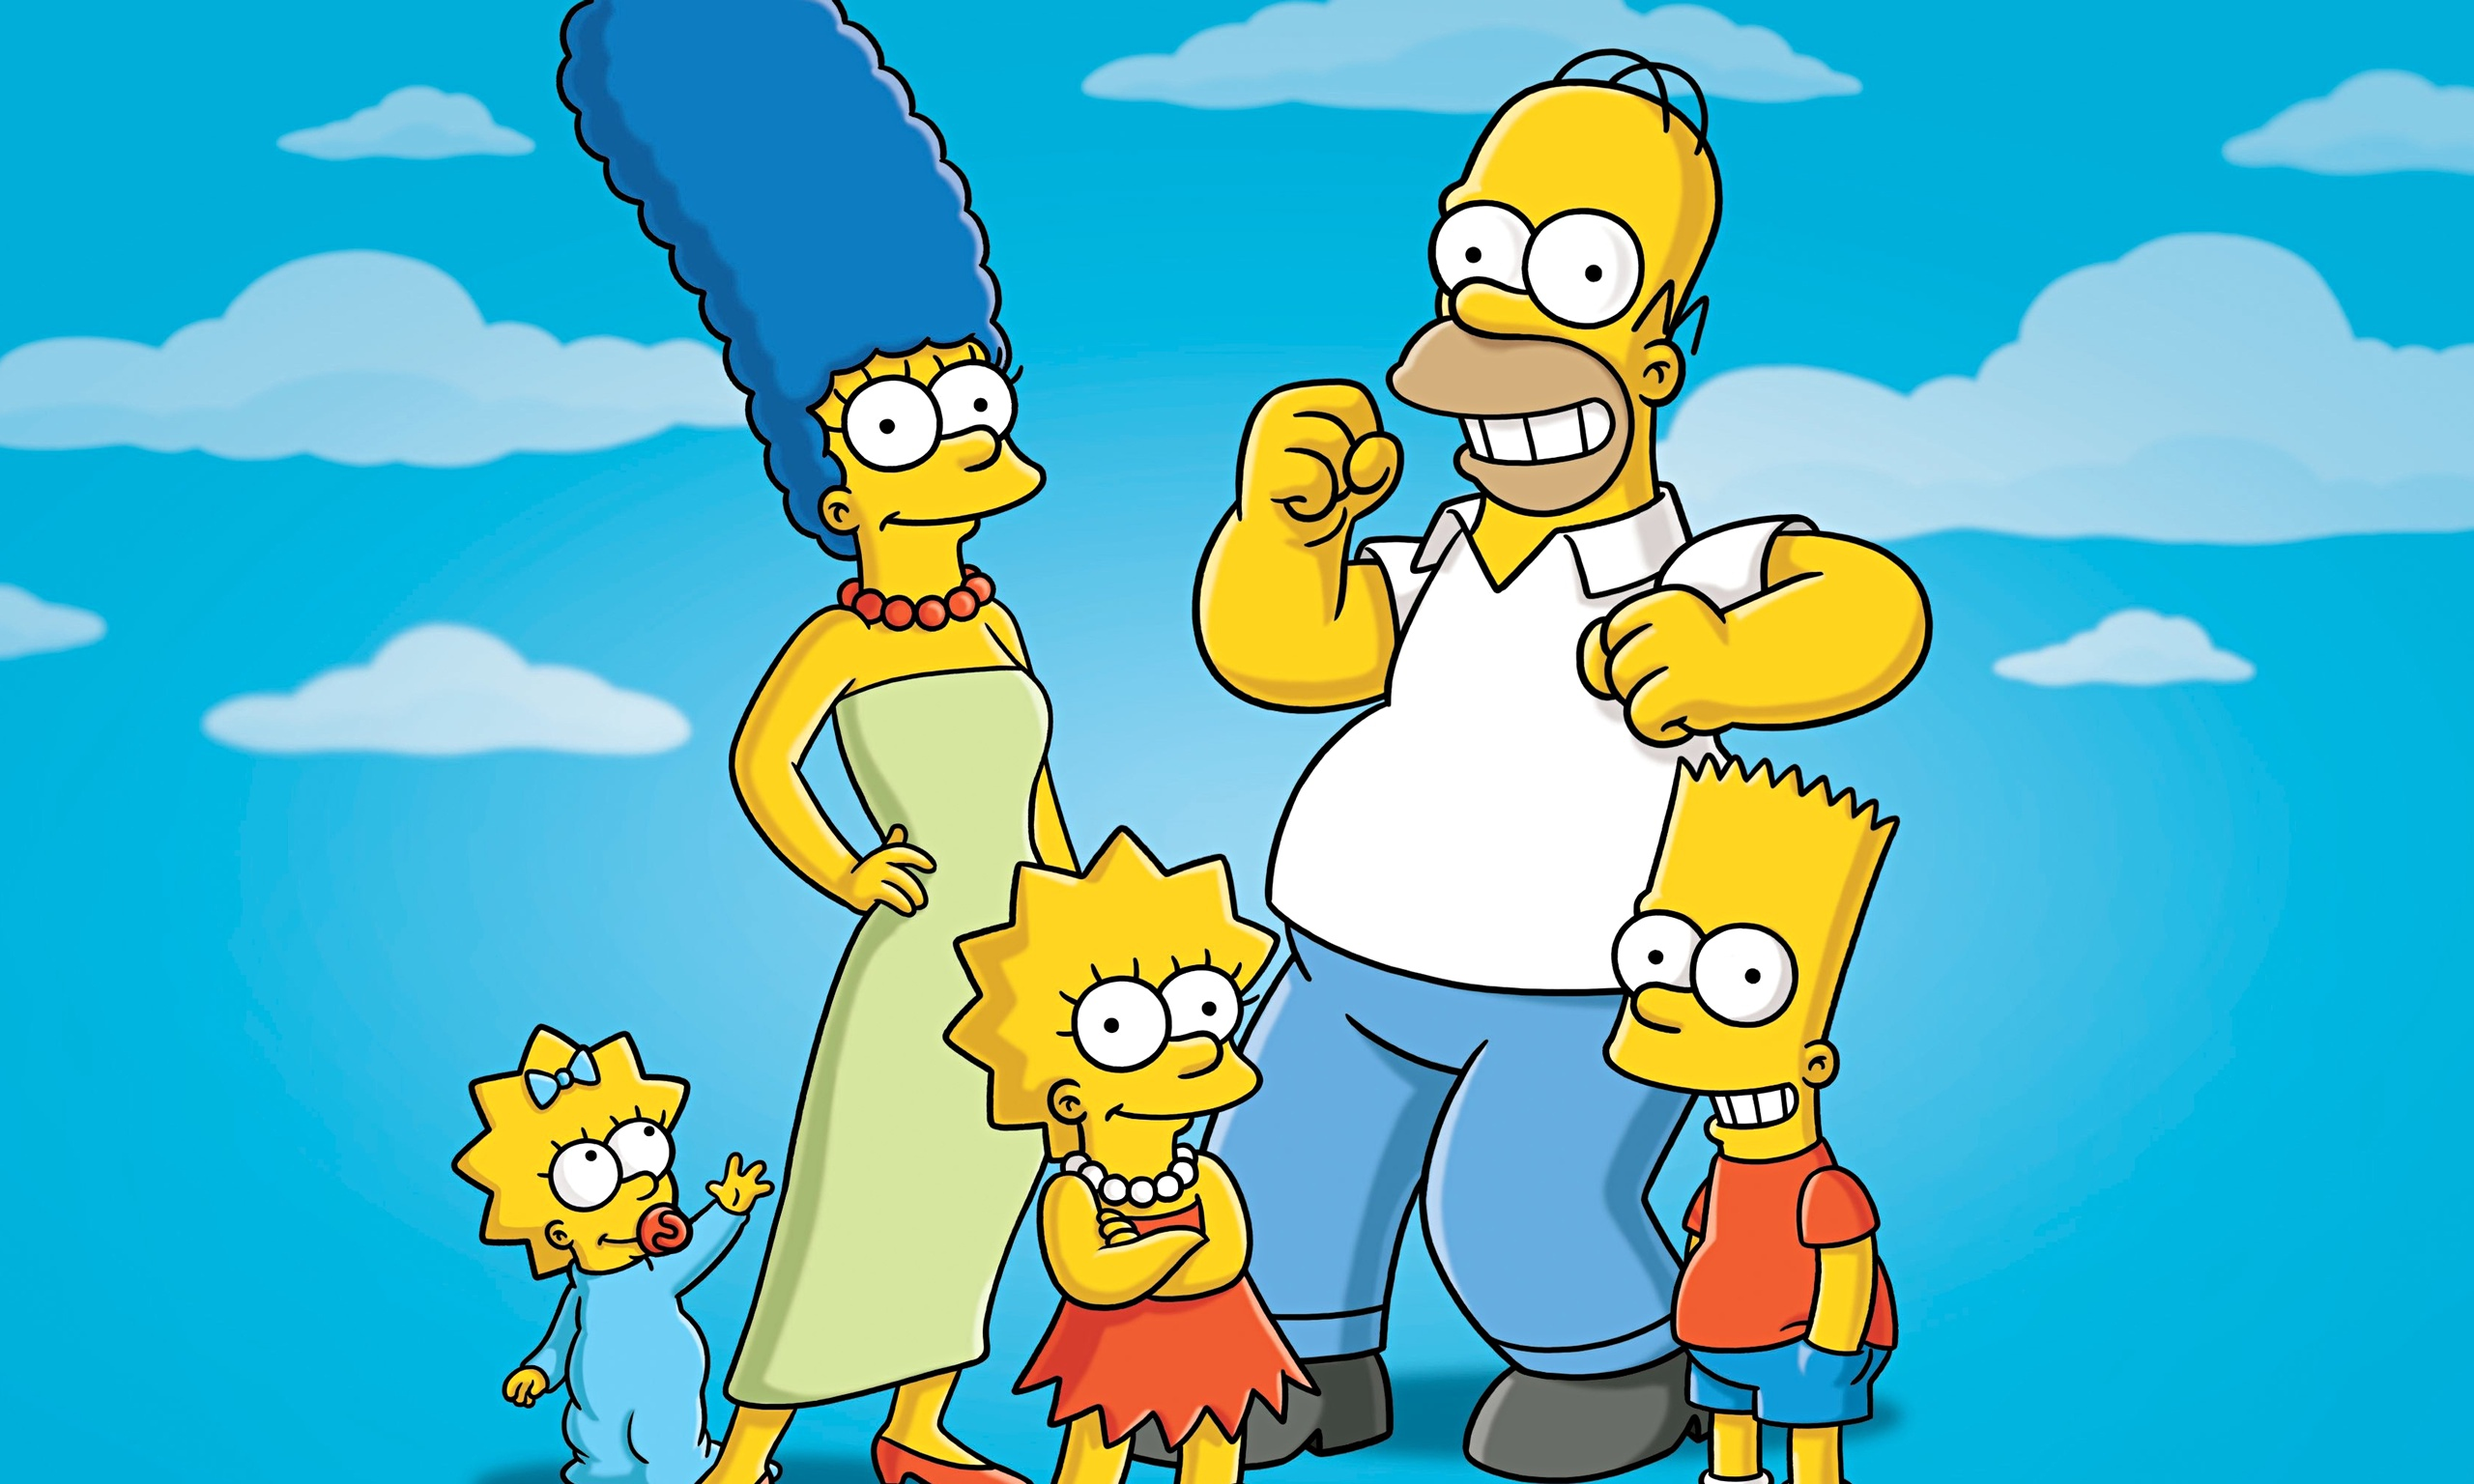 the simpsons tv show and pop culture media essay Many fictional animated, pop culture texts that we experience today, such as the simpsons, allow the producers to fuse the realms of fantasy and reality, often creating this nothing is sacred type approach mentioned above, to their storylines.